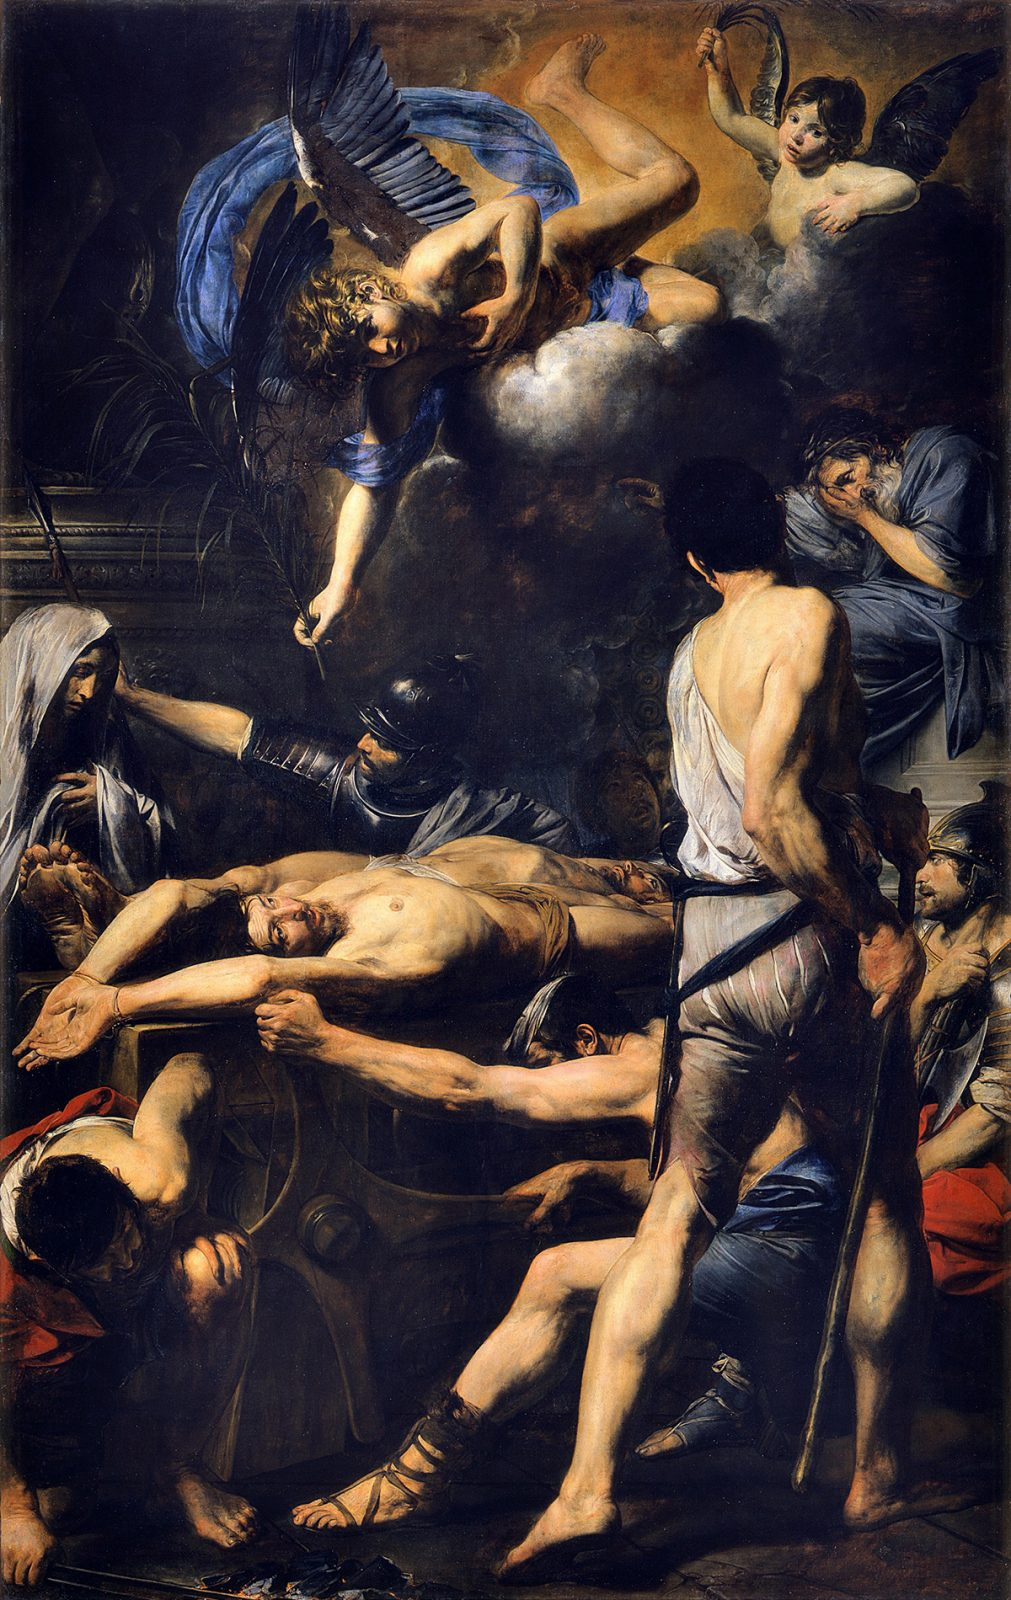 Valentine de Boulogne. The martyrdom of saints Martinian and Process